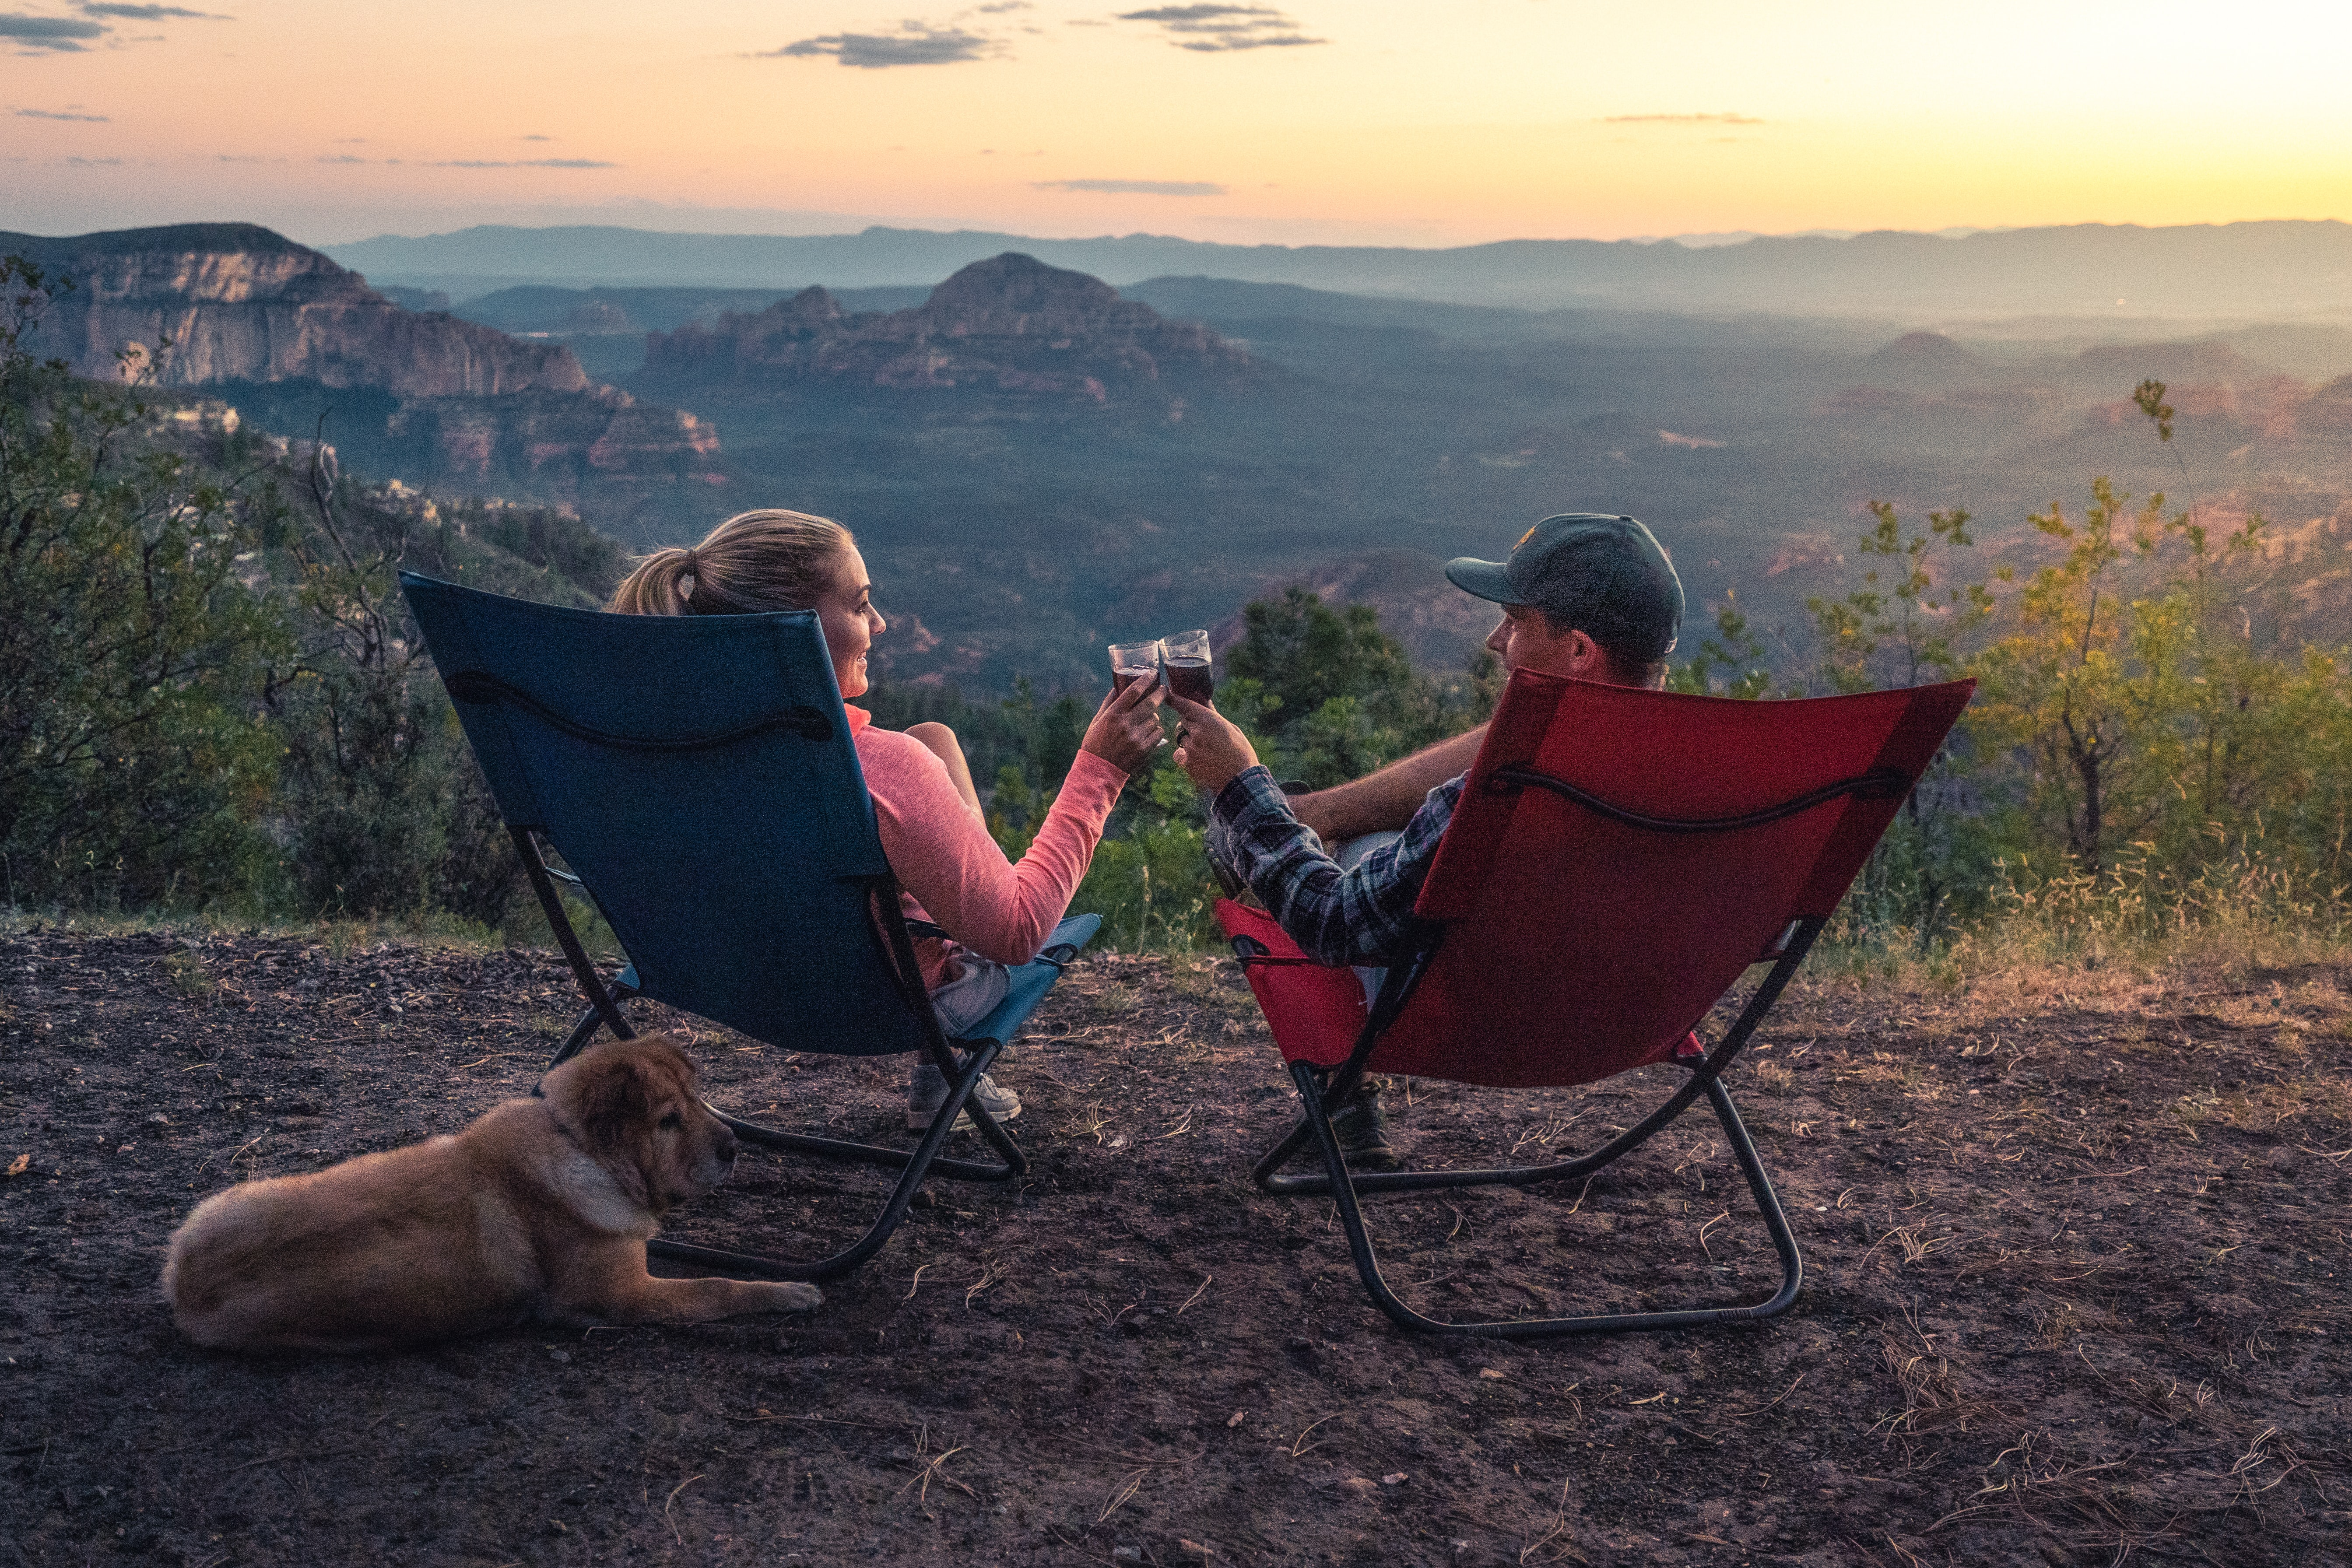 A couple makes a toast with wine as they enjoy a sweeping view.